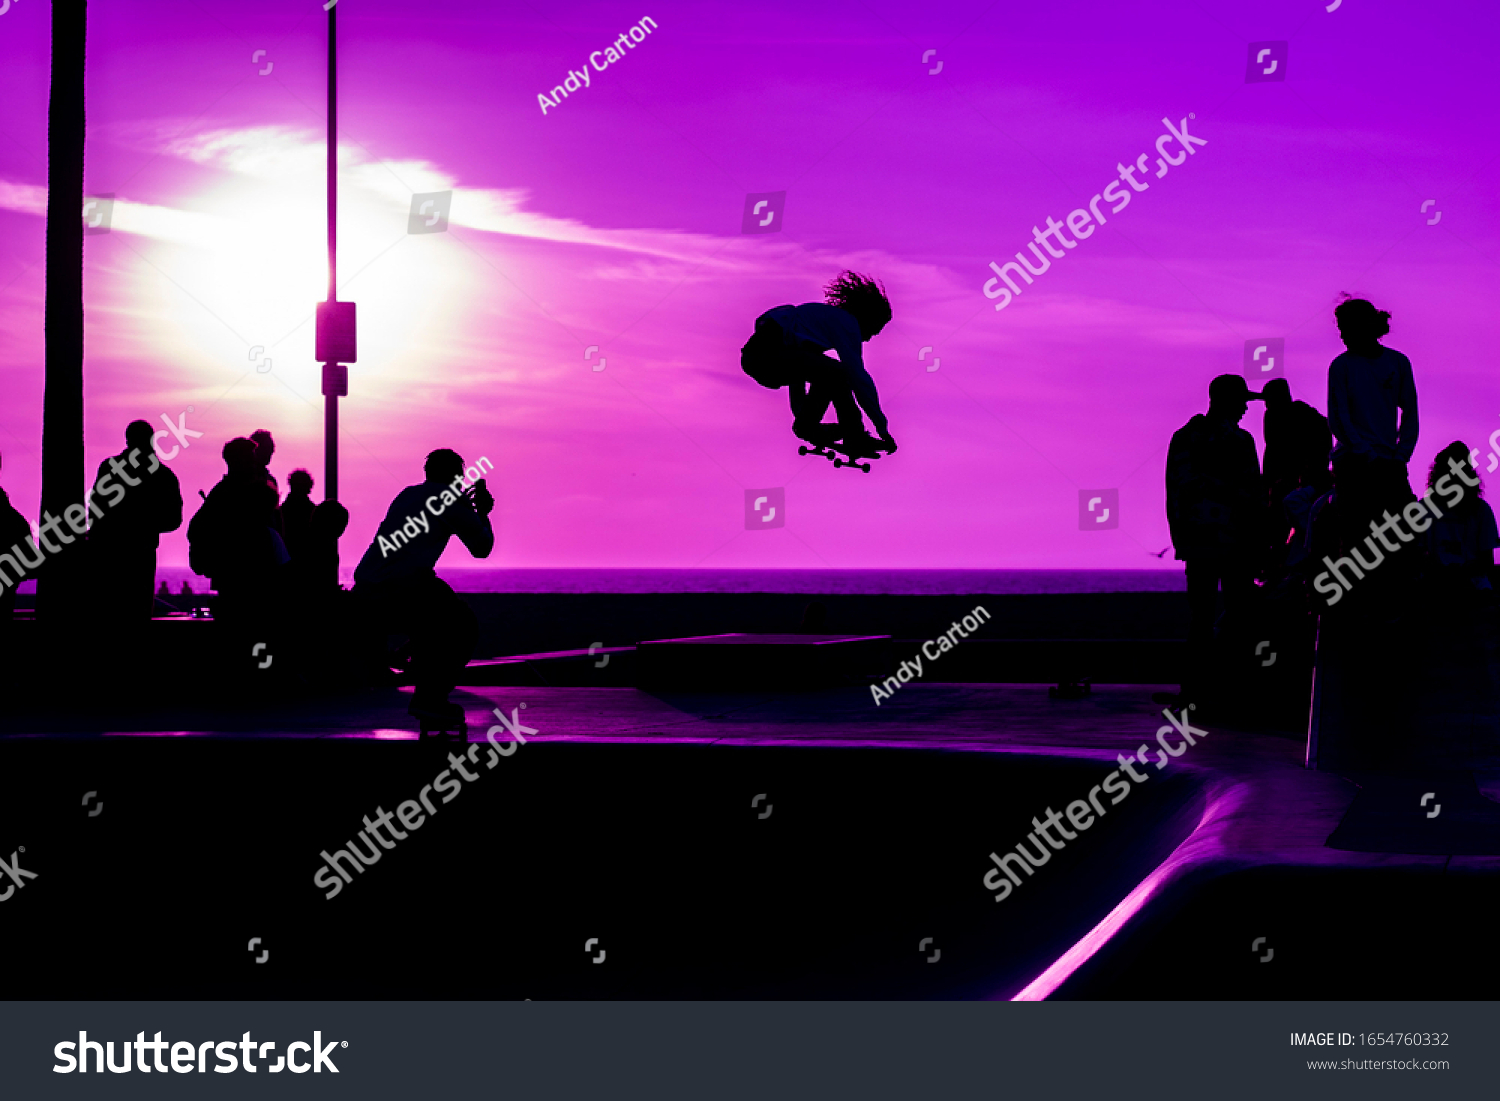 Close Silhouettes Shadows Skaters Purple Sunset Stock Photo Edit Now 1654760332